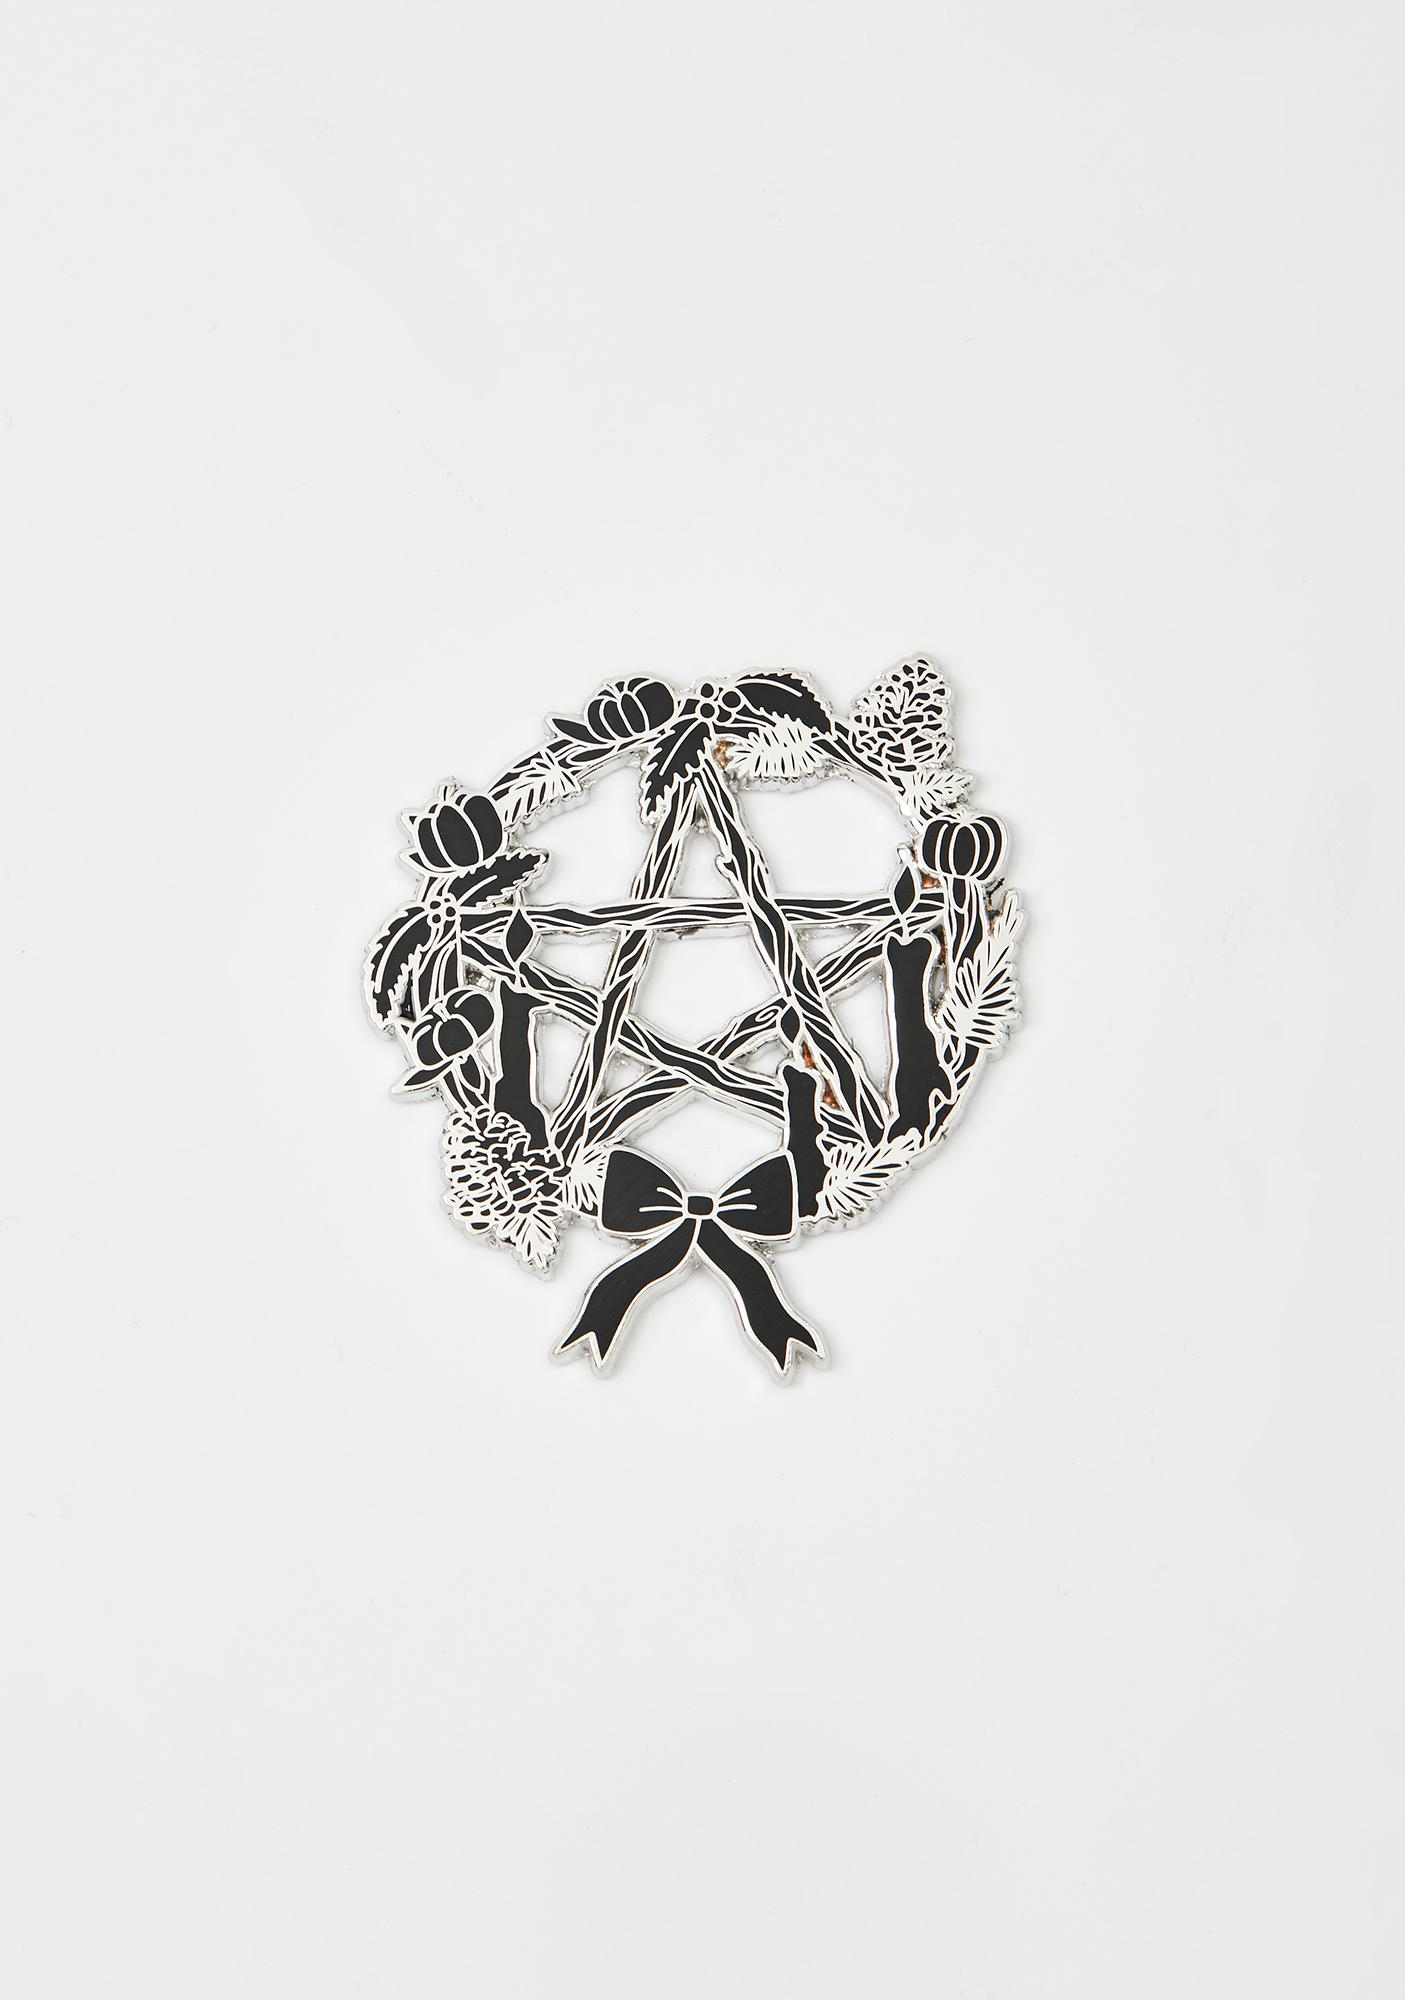 Pentacle Wreath Pin Brooch by Lady Moon Co.